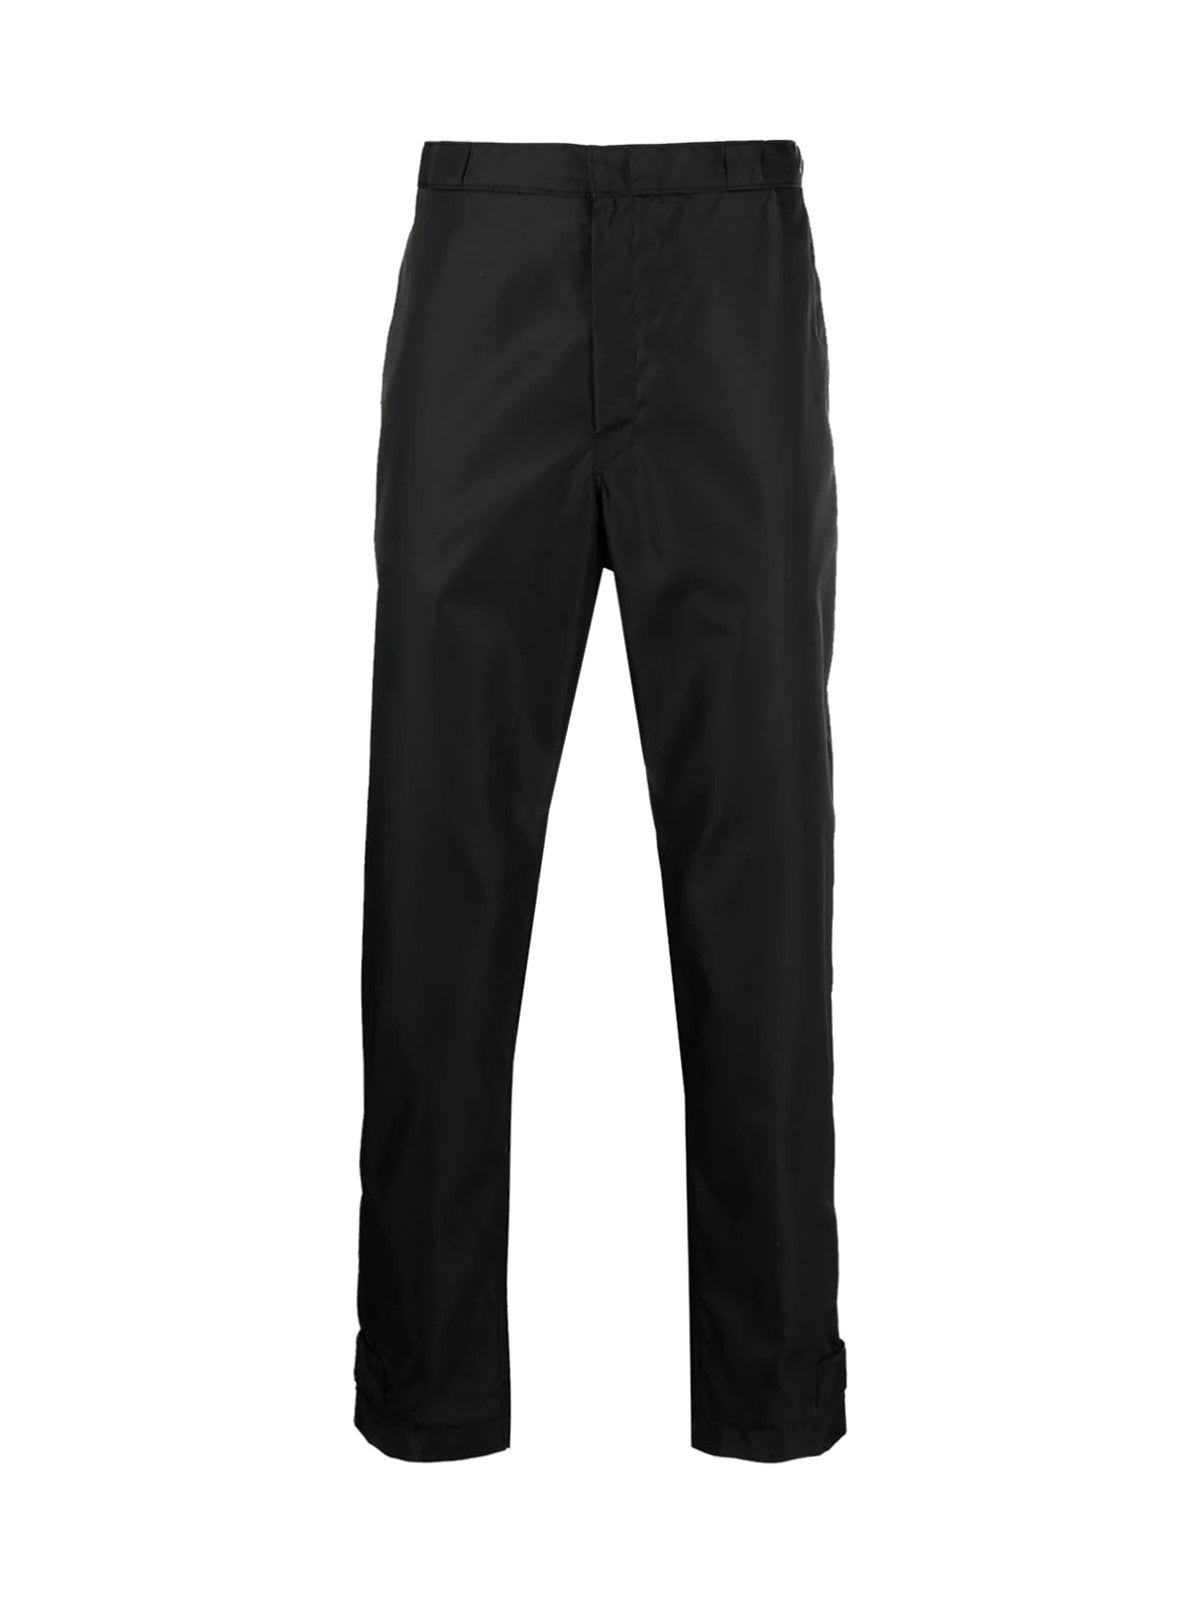 tailored style track trousers